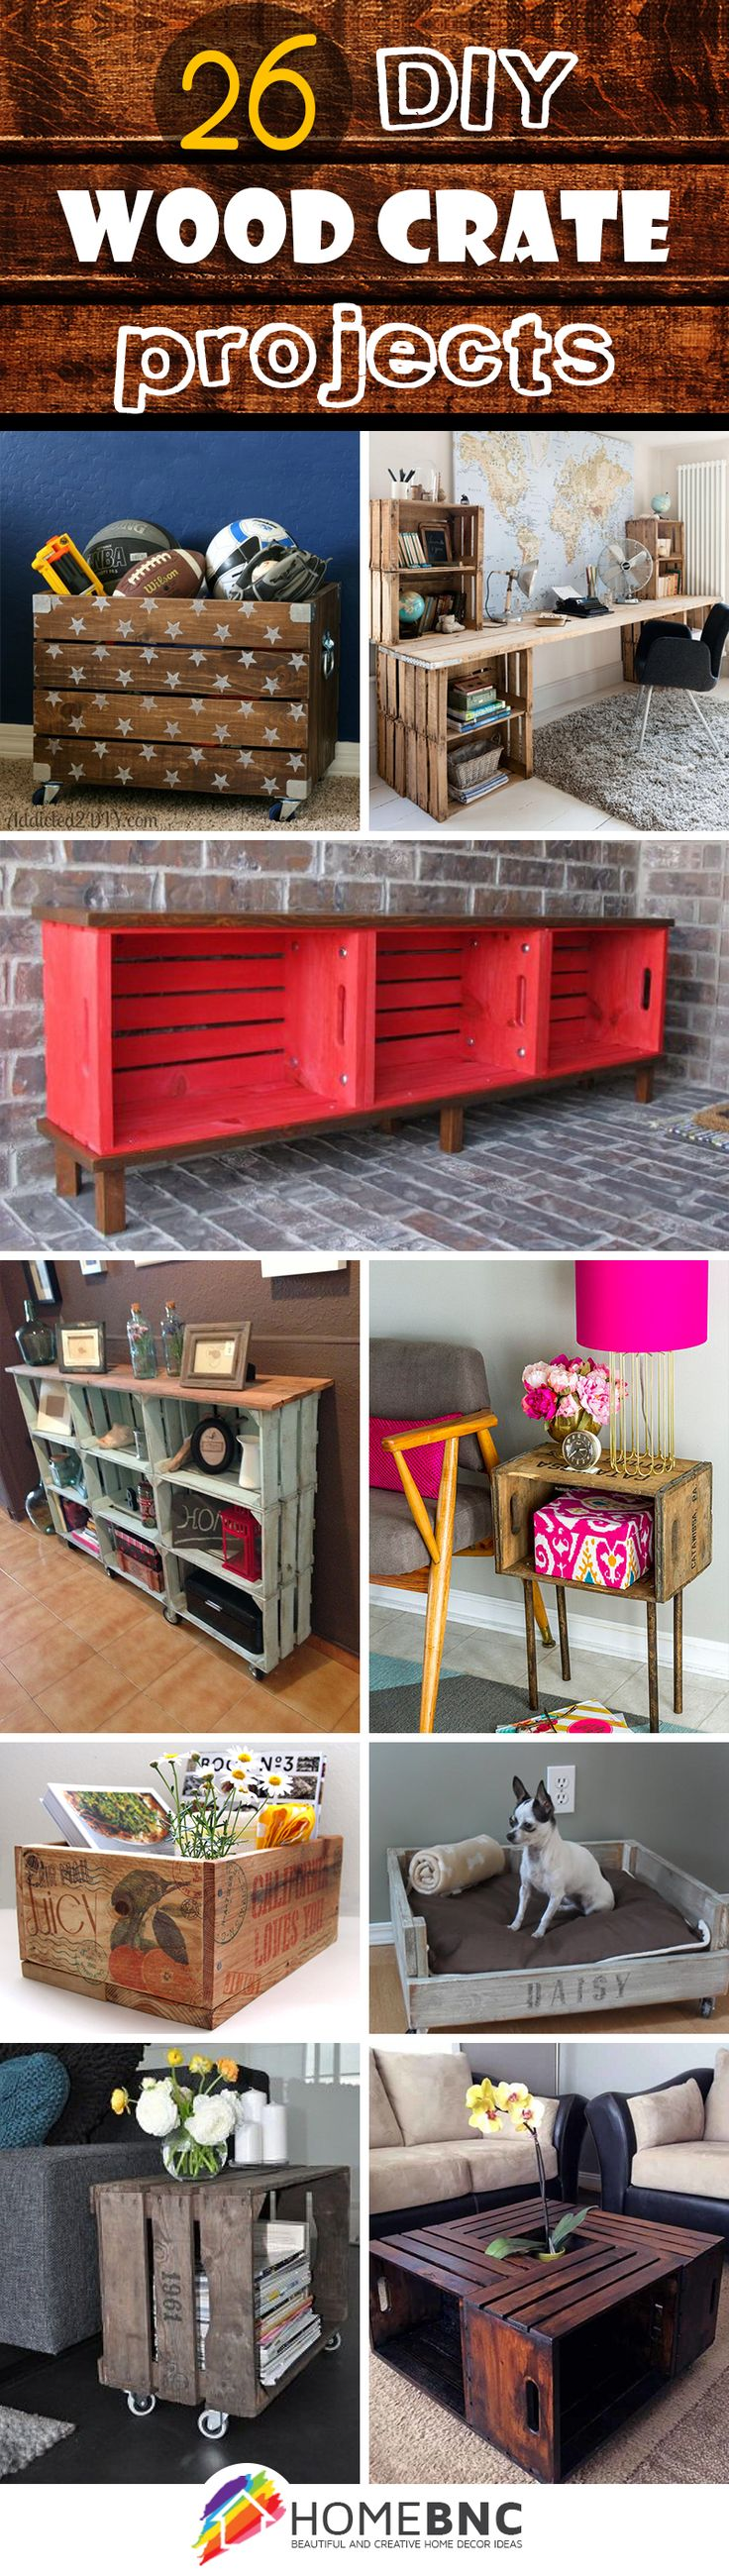 DIY Wood Crate Ideas                                                                                                                                                                                 More